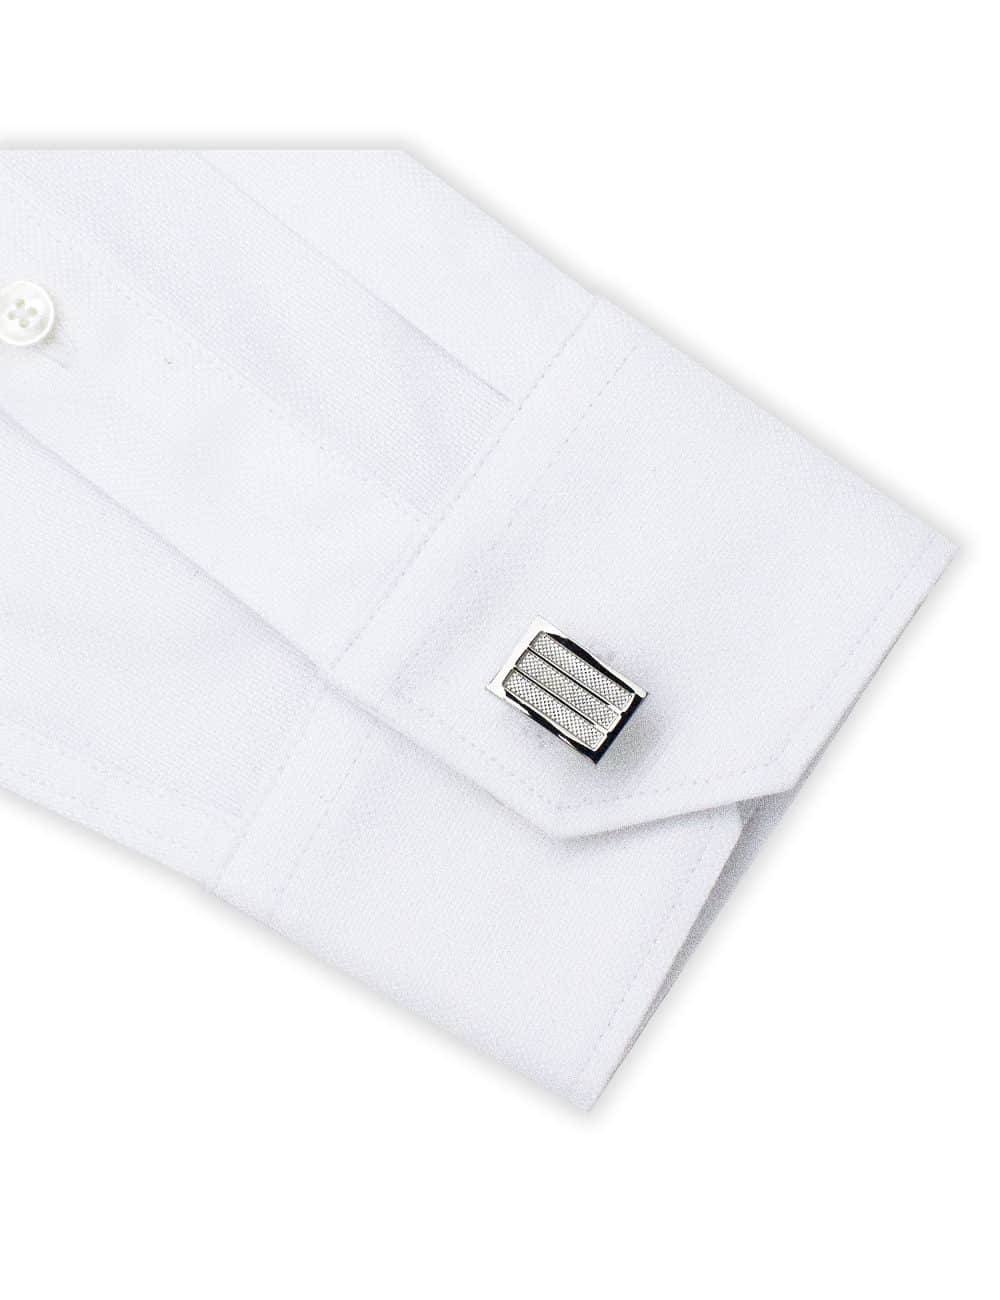 Classic Silver Rectangle Tiles with Micro Checks Cufflink C101FC-070